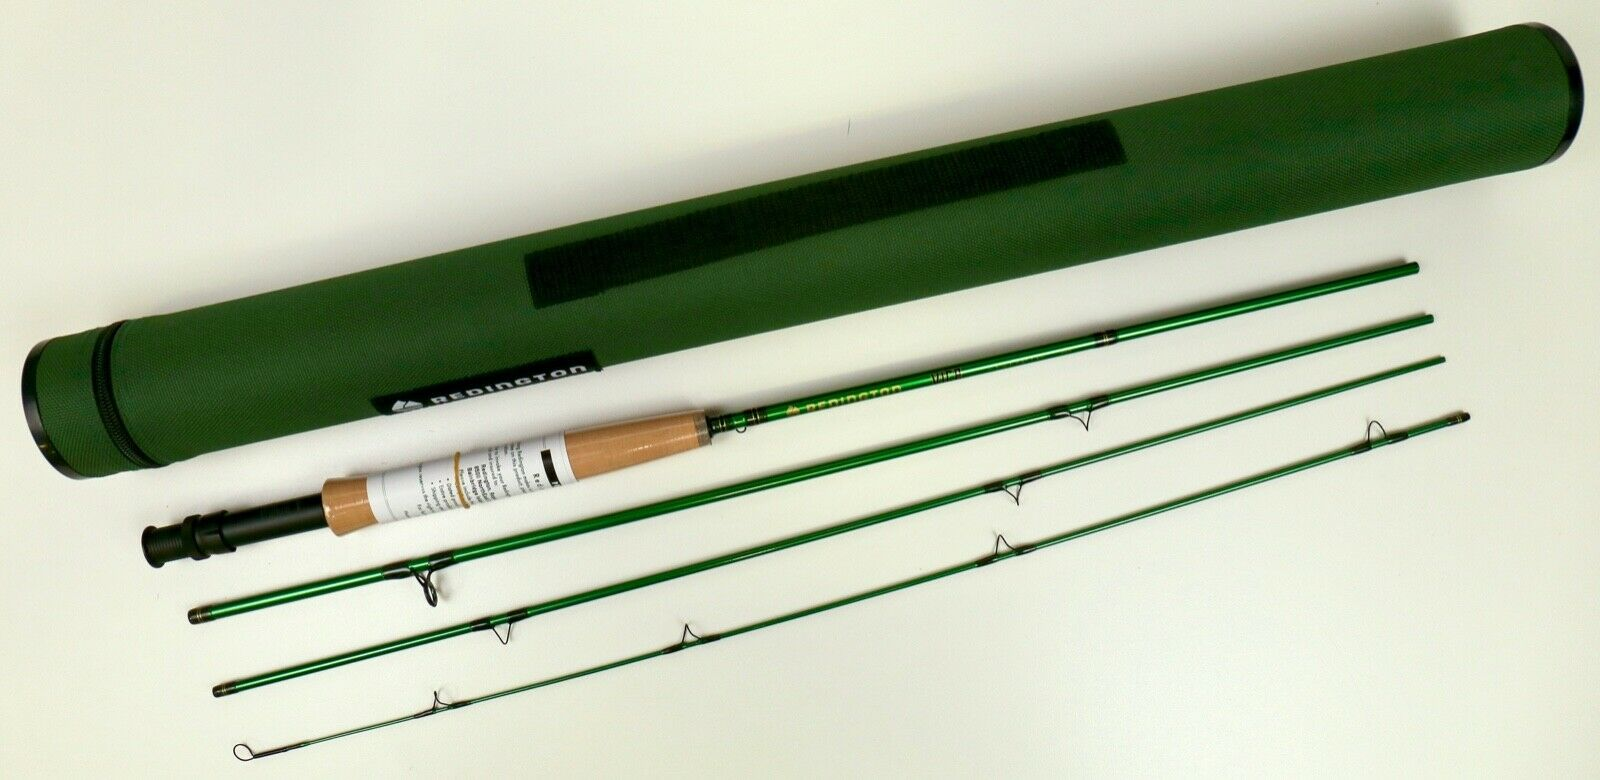 rossoington Vice Fly Rod 7' 6 3 WT FREE FAST SHIPPING 3764